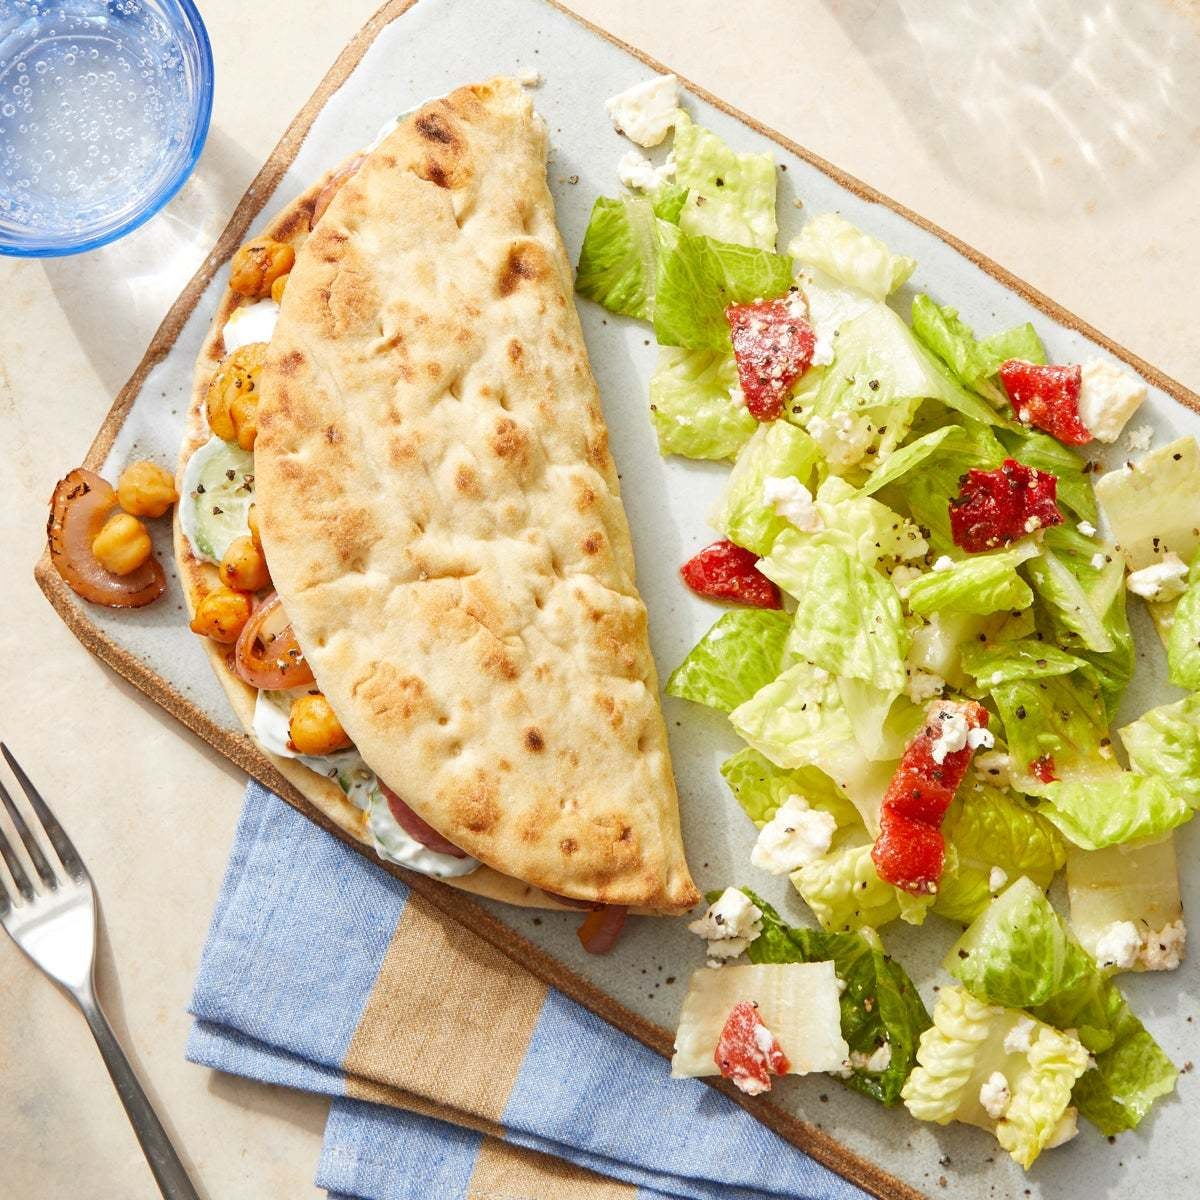 Harissa Chickpea Gyros with Romaine, Roasted Pepper & Feta Salad